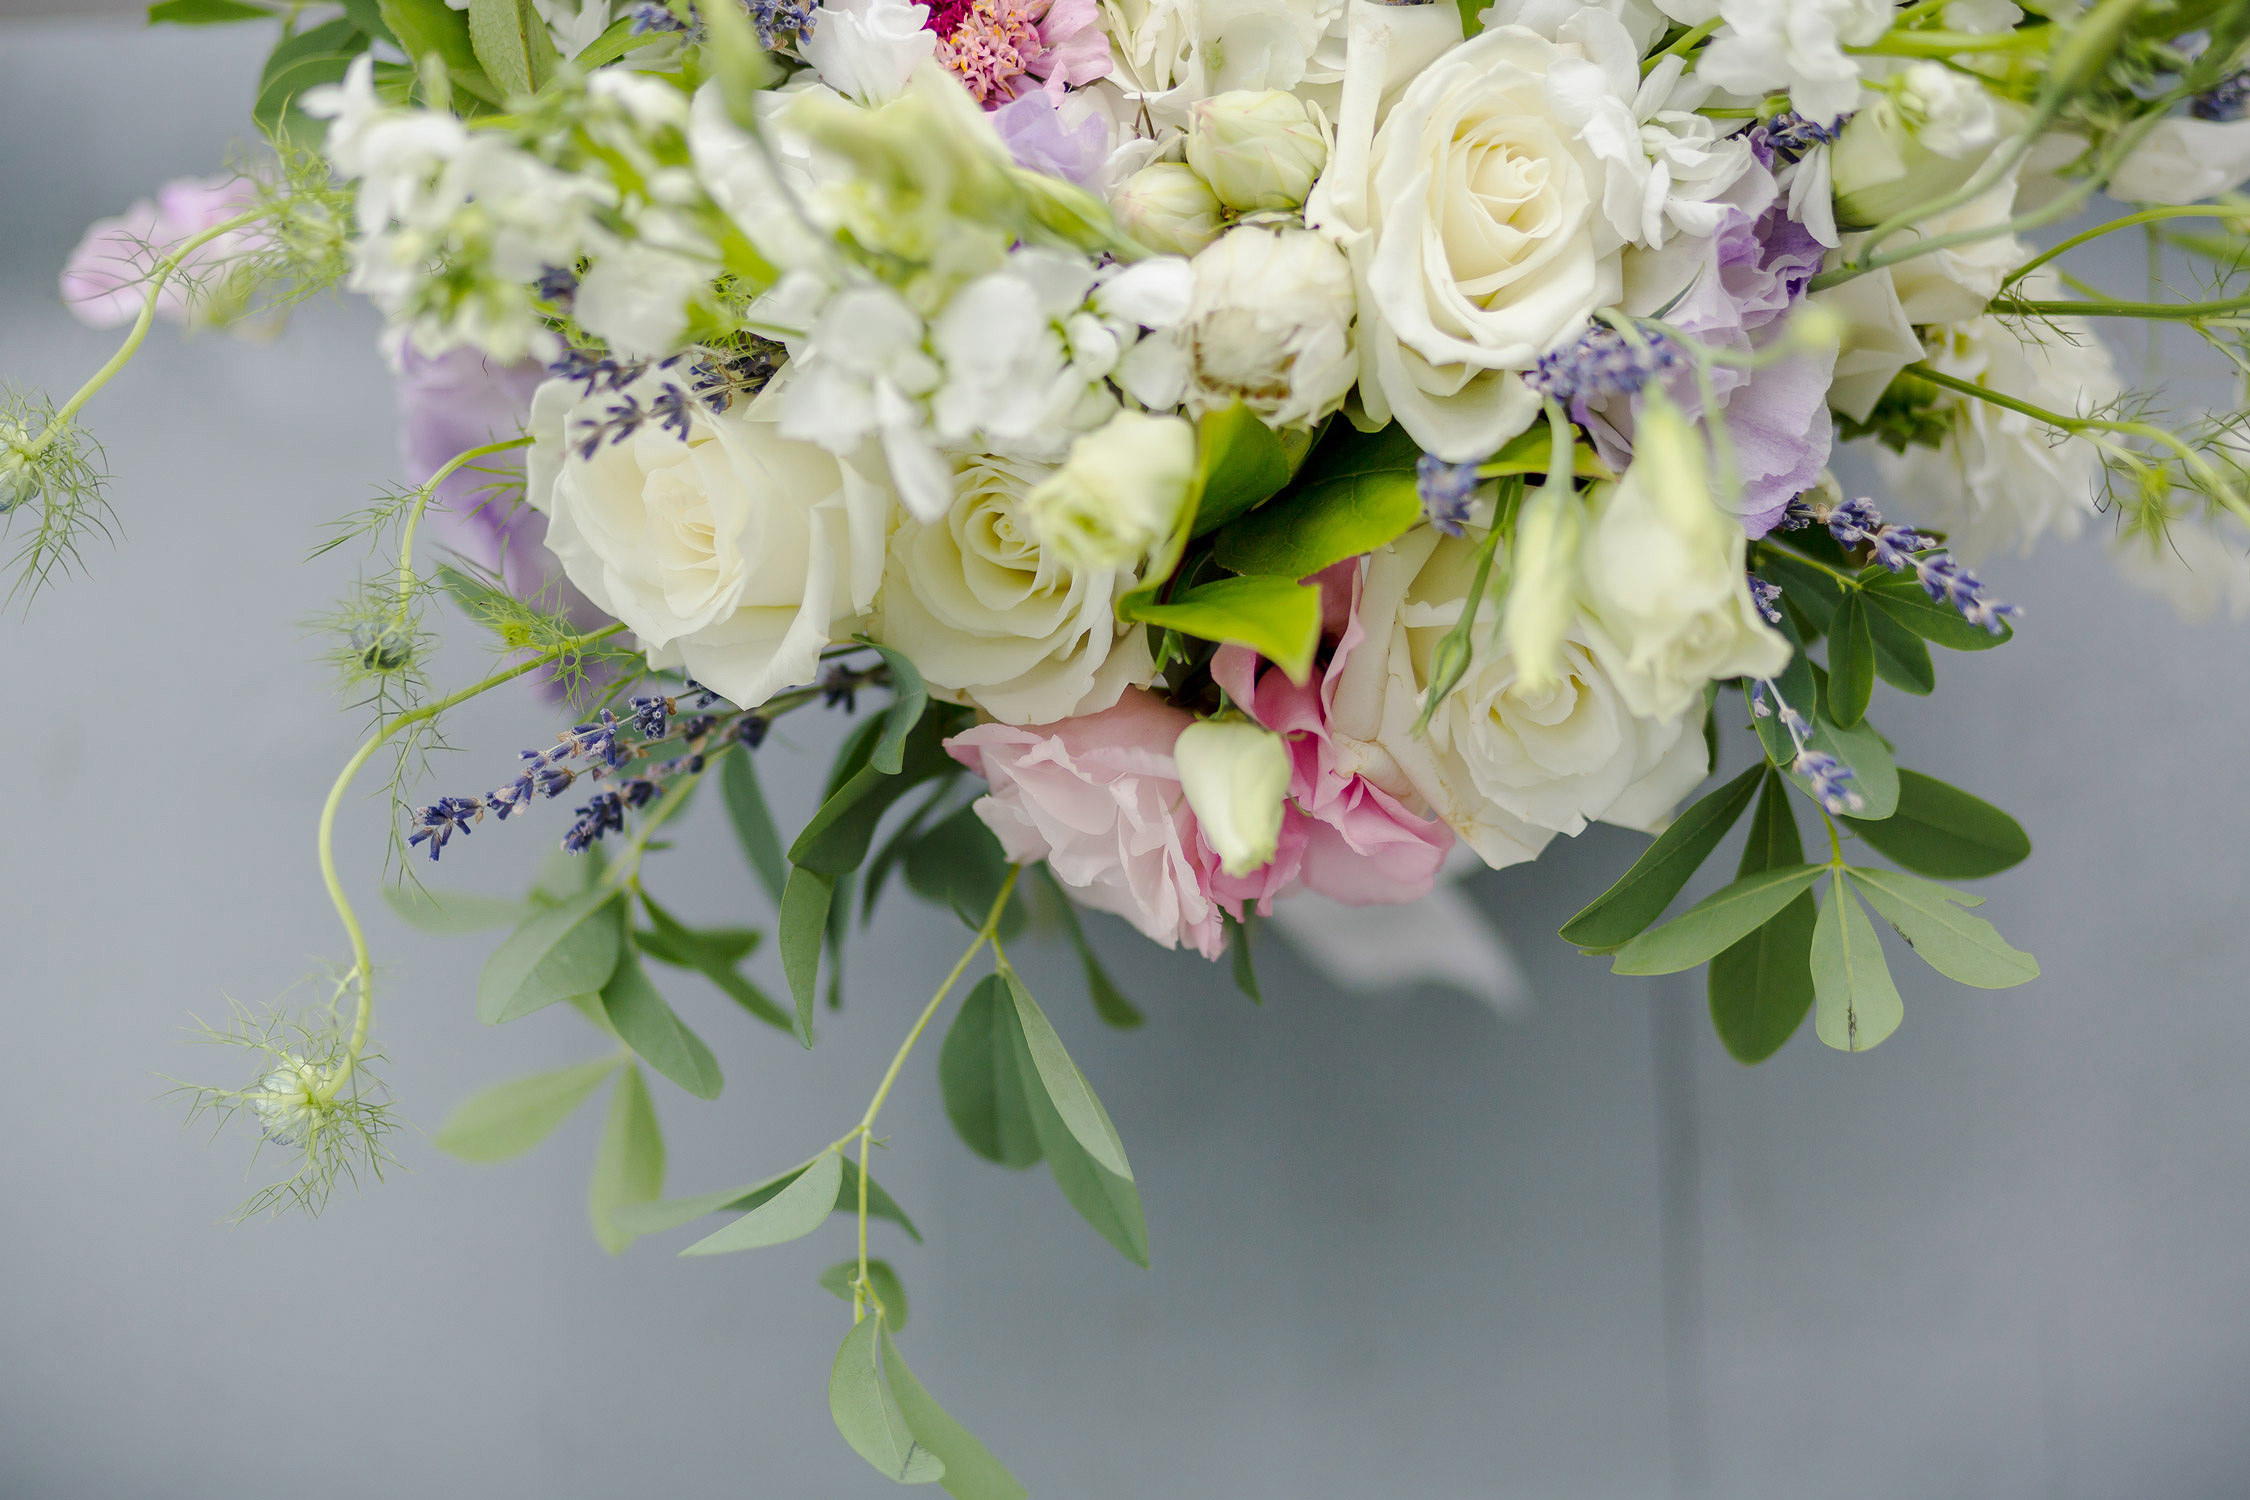 A pale pink and white wedding bouquet from threads and blooms